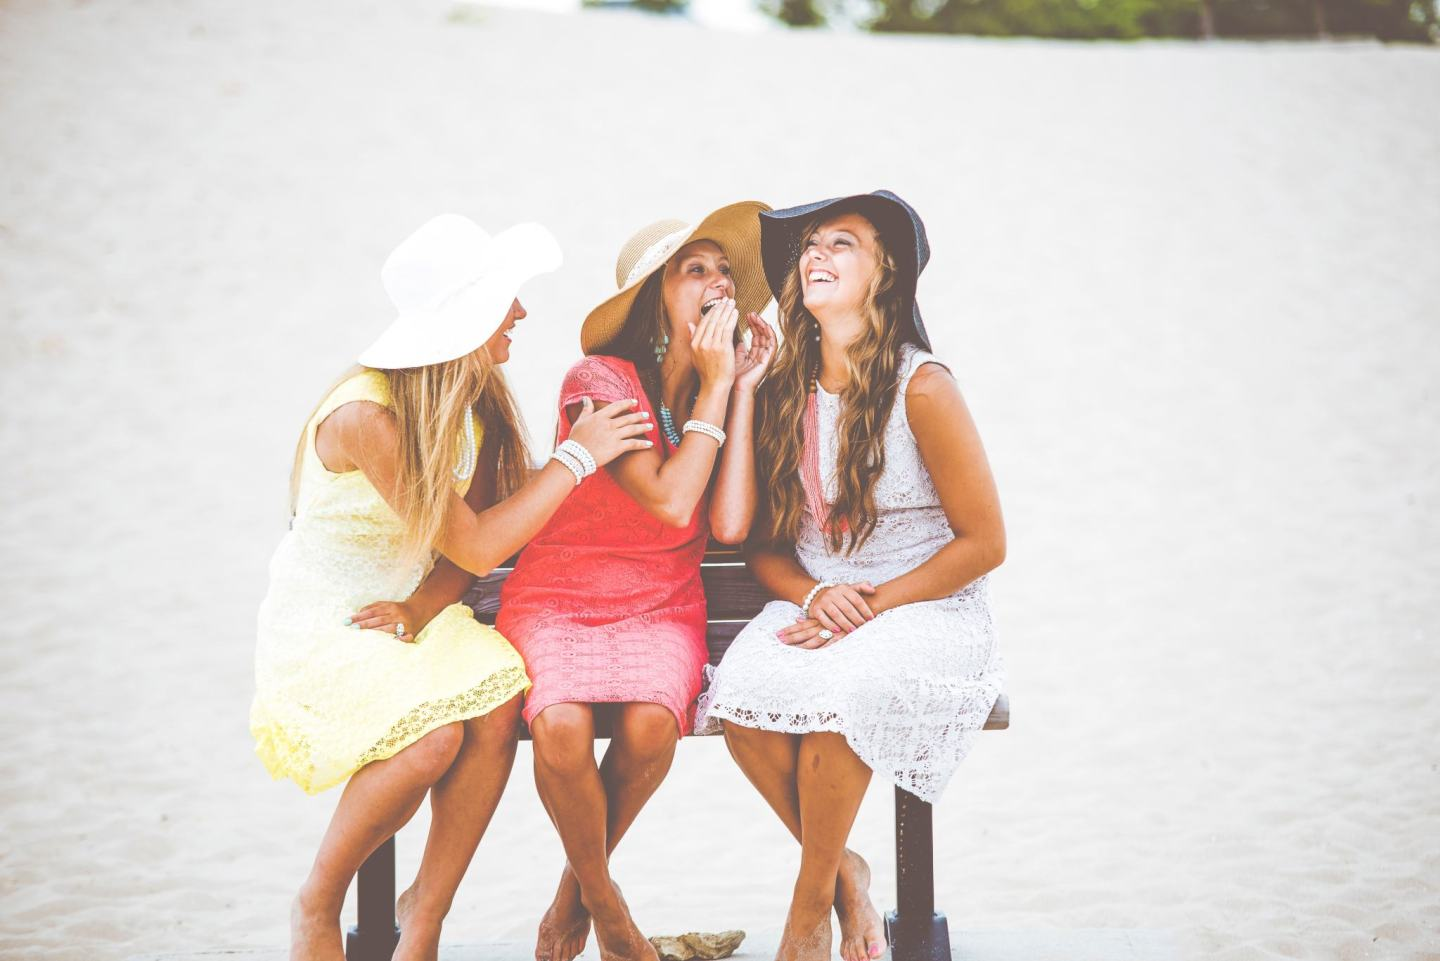 Ladies sitting down and portraying the bad habit of gossiping